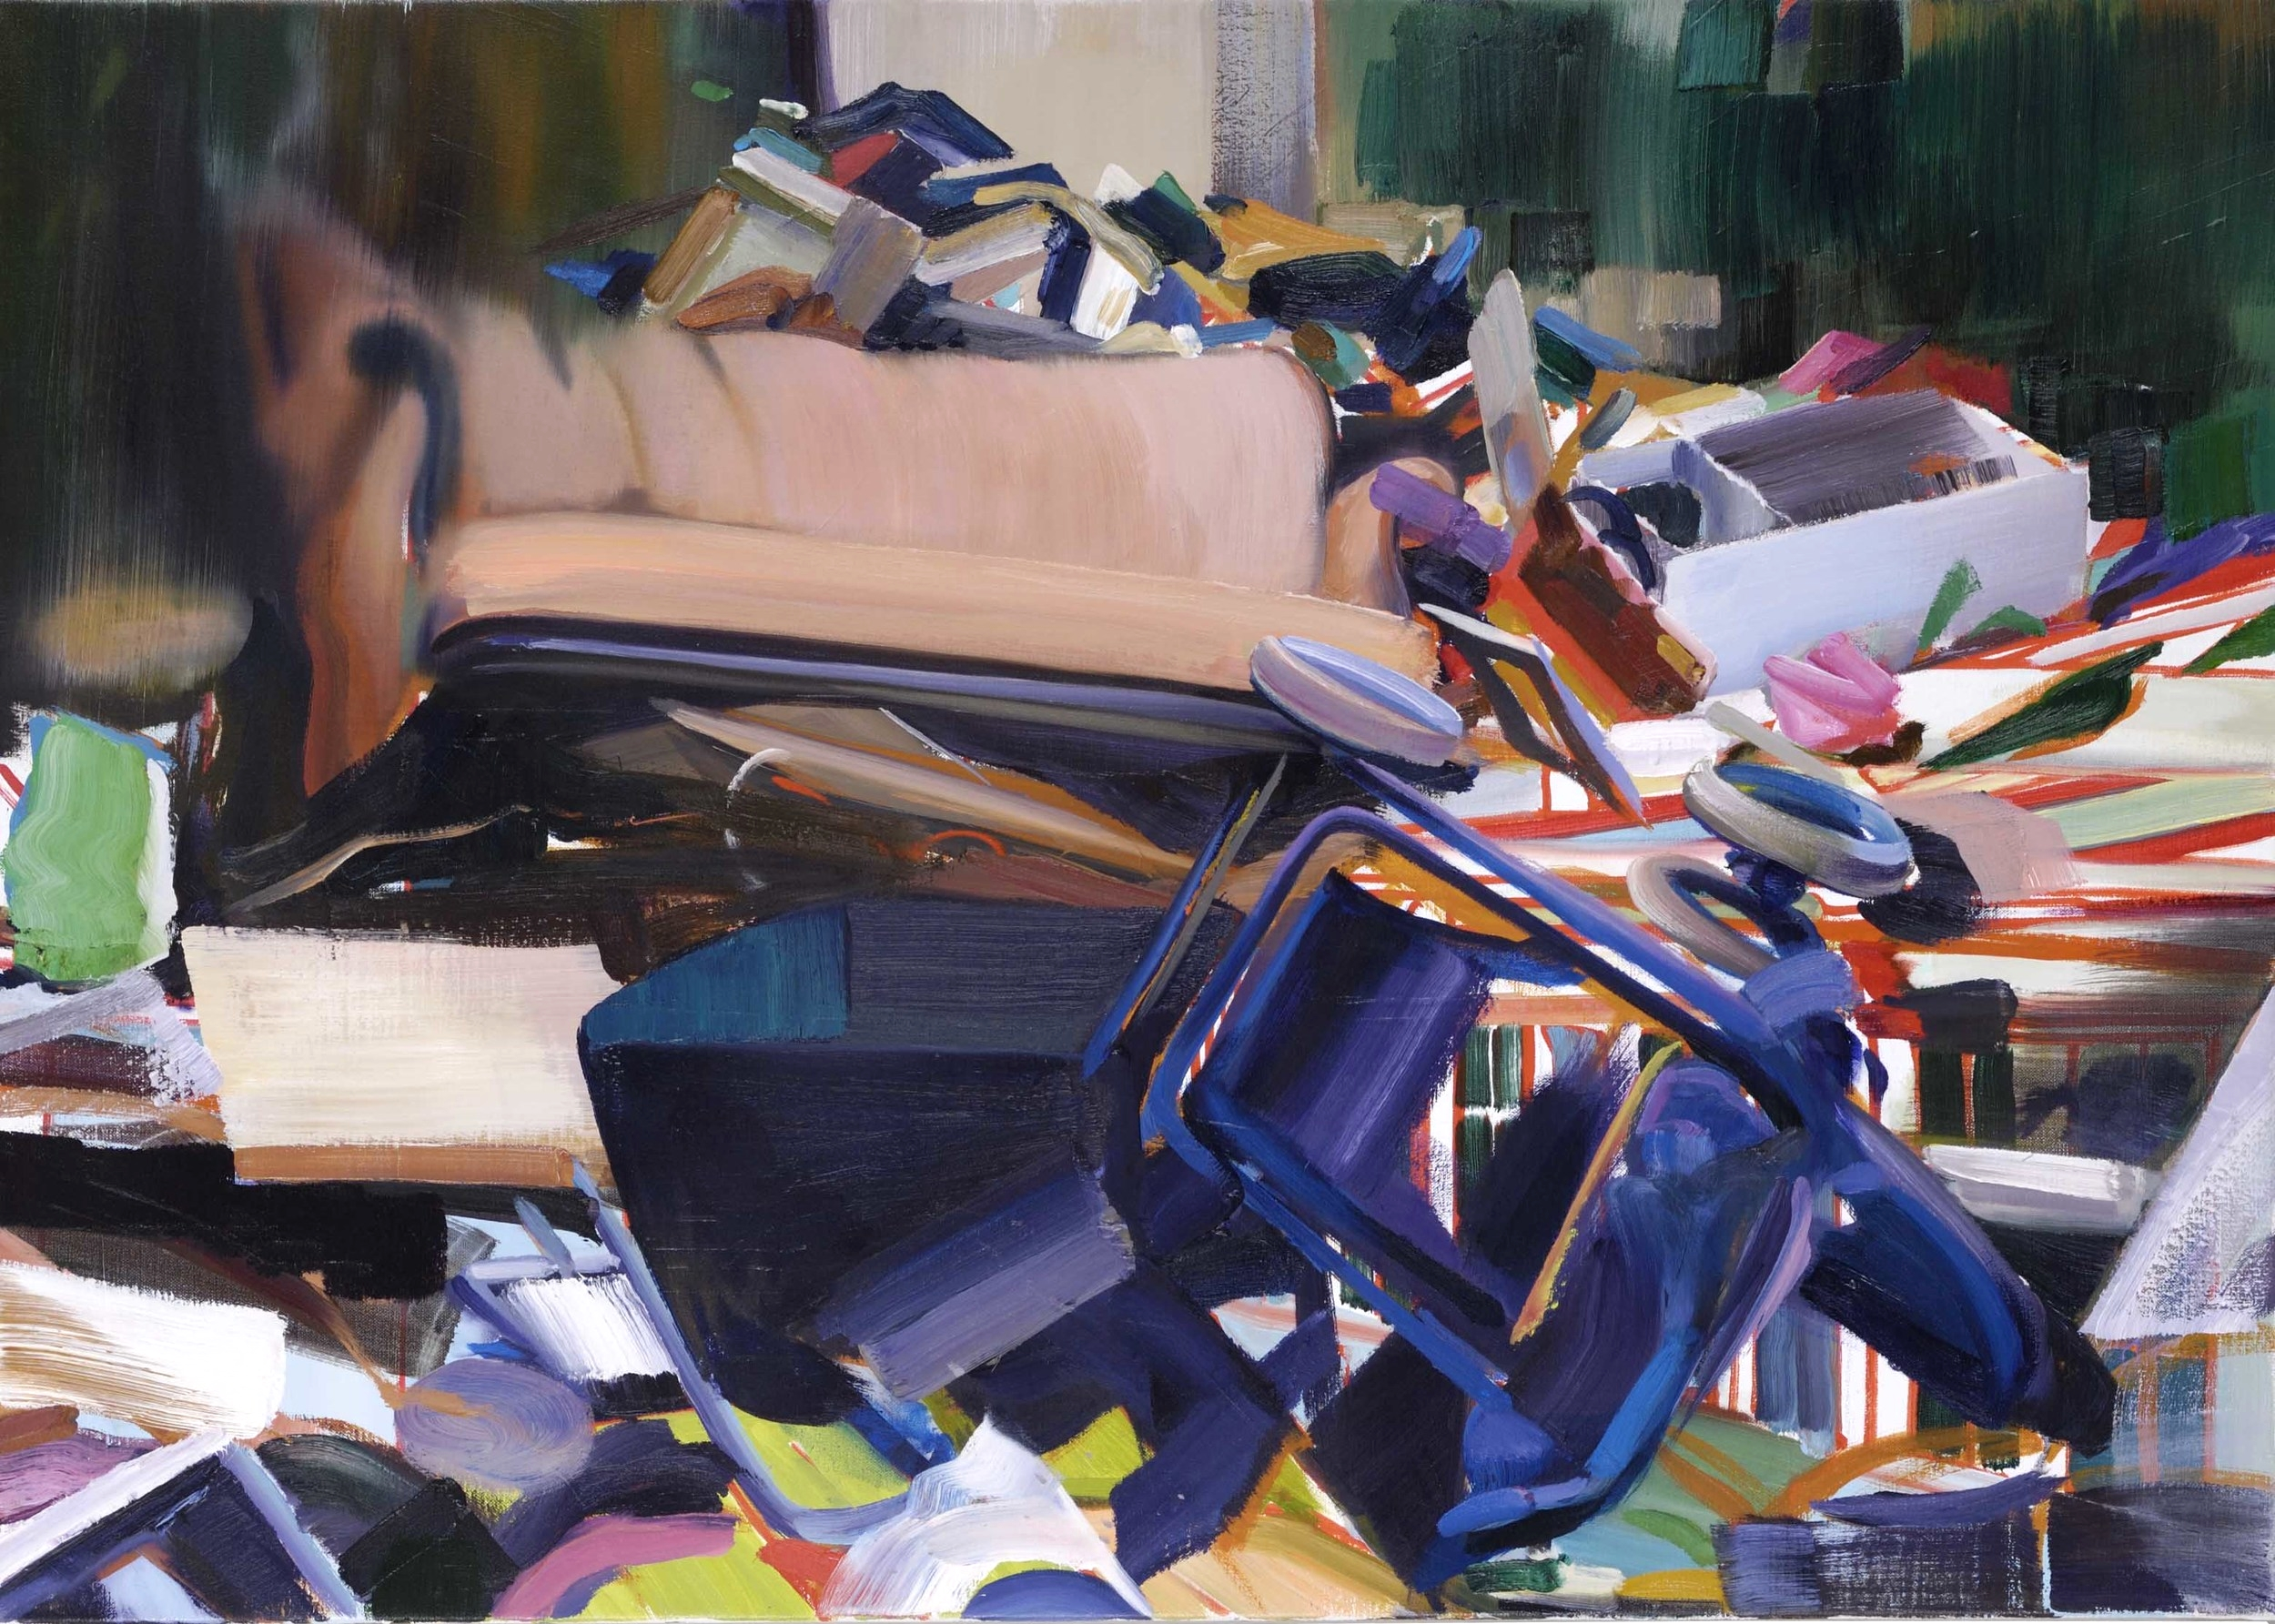 Lounge , 2006, oil on canvas, 61 x 93cm. Collection P. Piguet, France